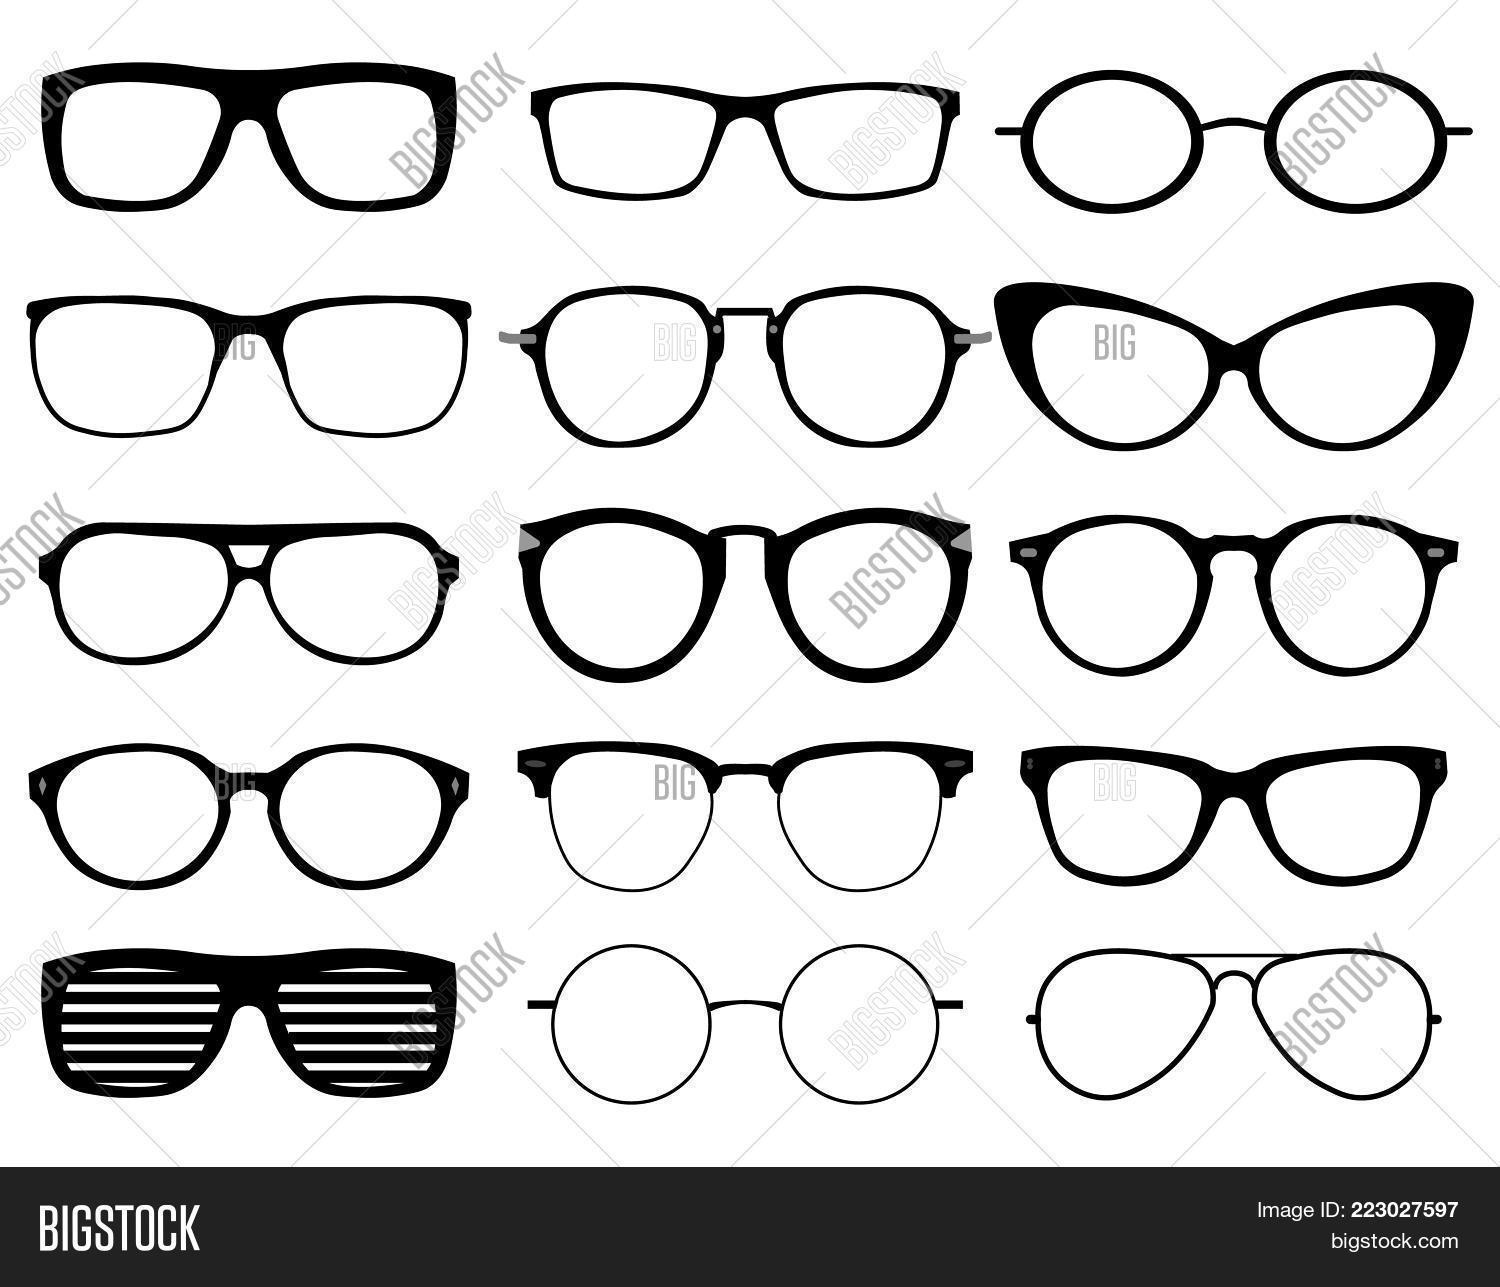 Glasses Model Icons, Image & Photo (Free Trial) | Bigstock